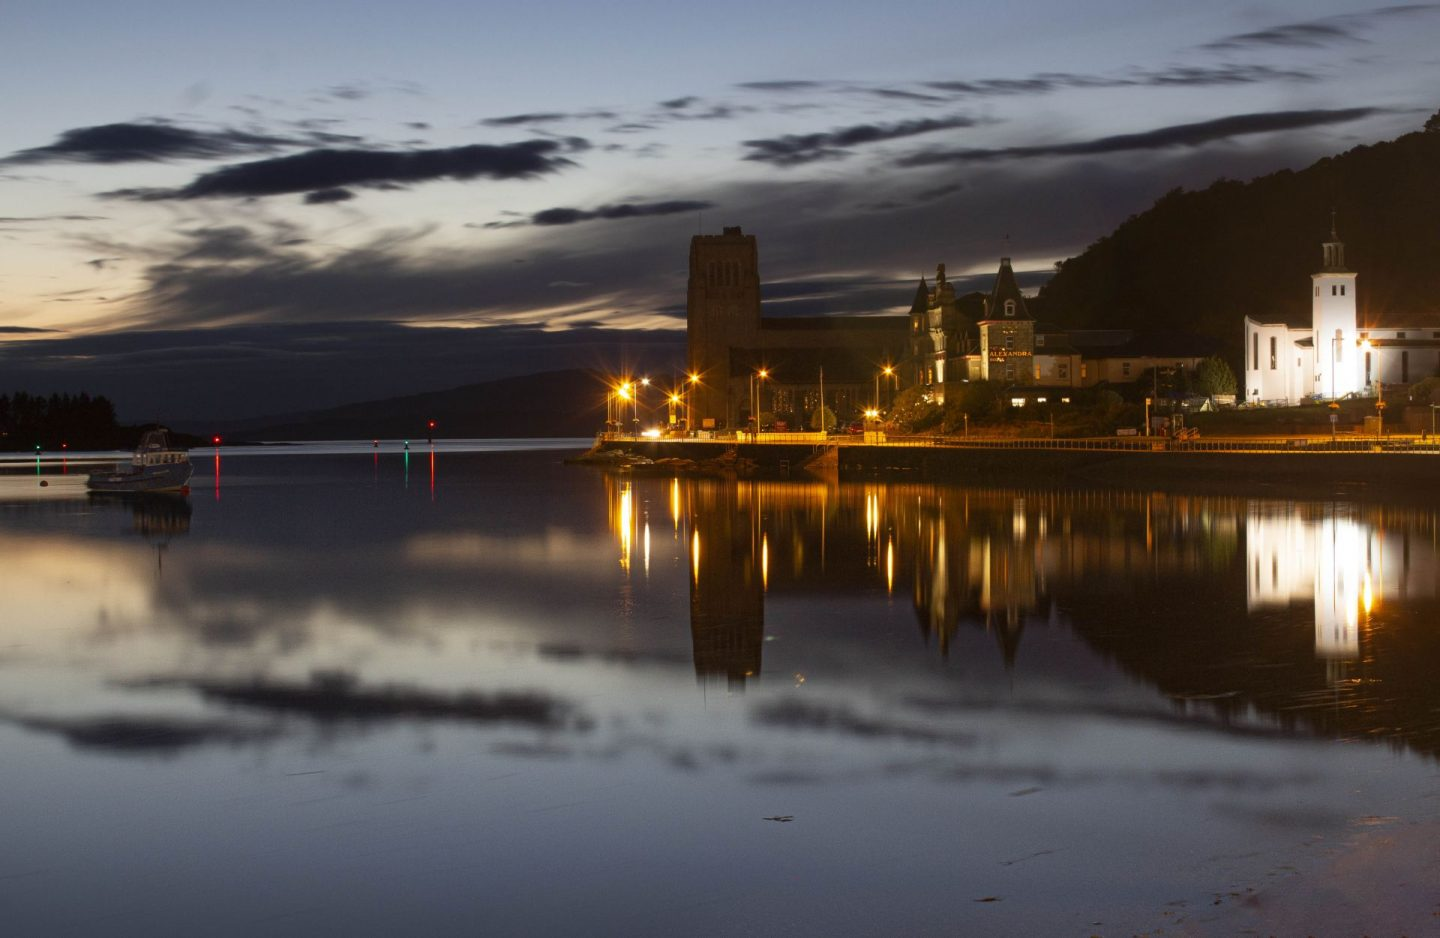 Looking out to the sea from Oban at night time.